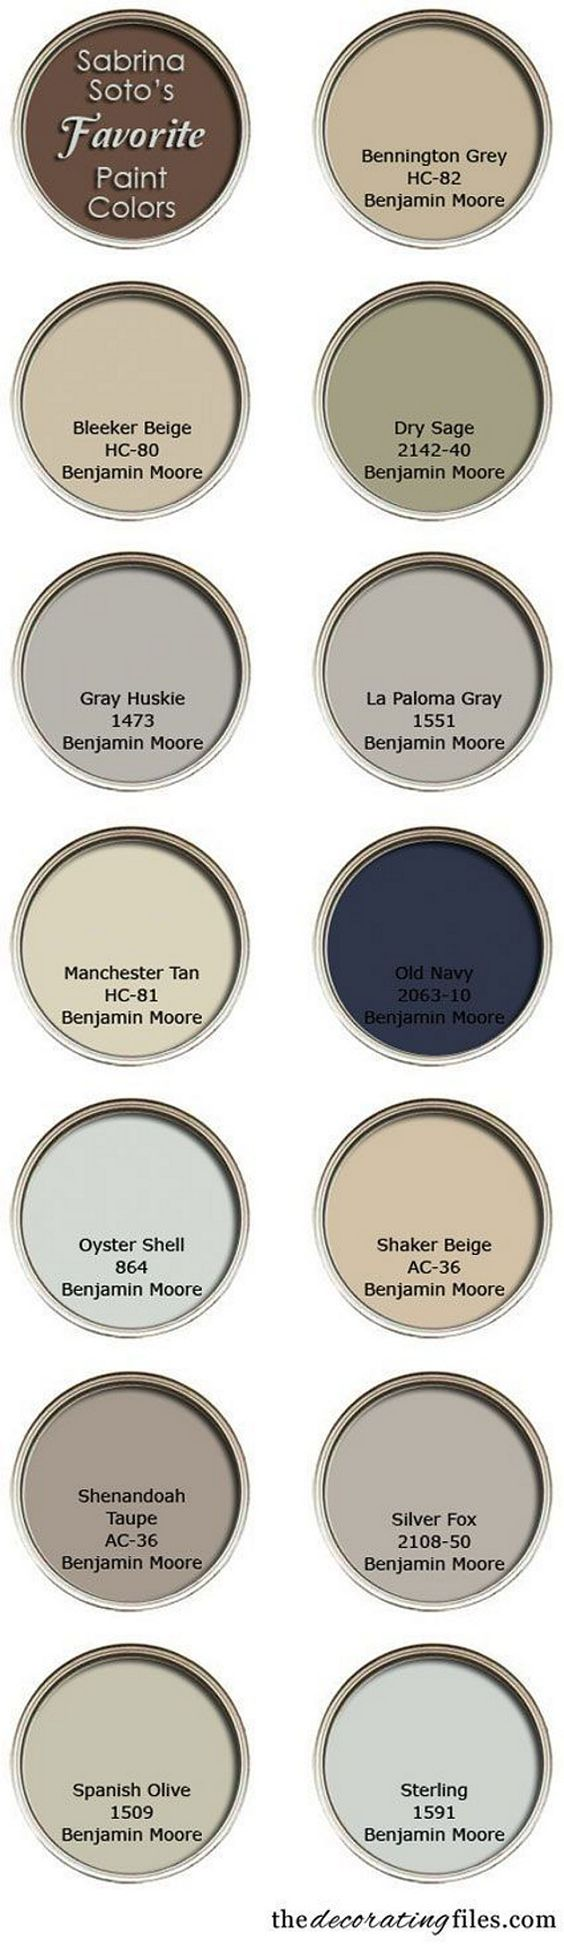 SHENANDOAH TAUPE.  LOOKS LIKE CAN GO WITH PEACHY KEEN